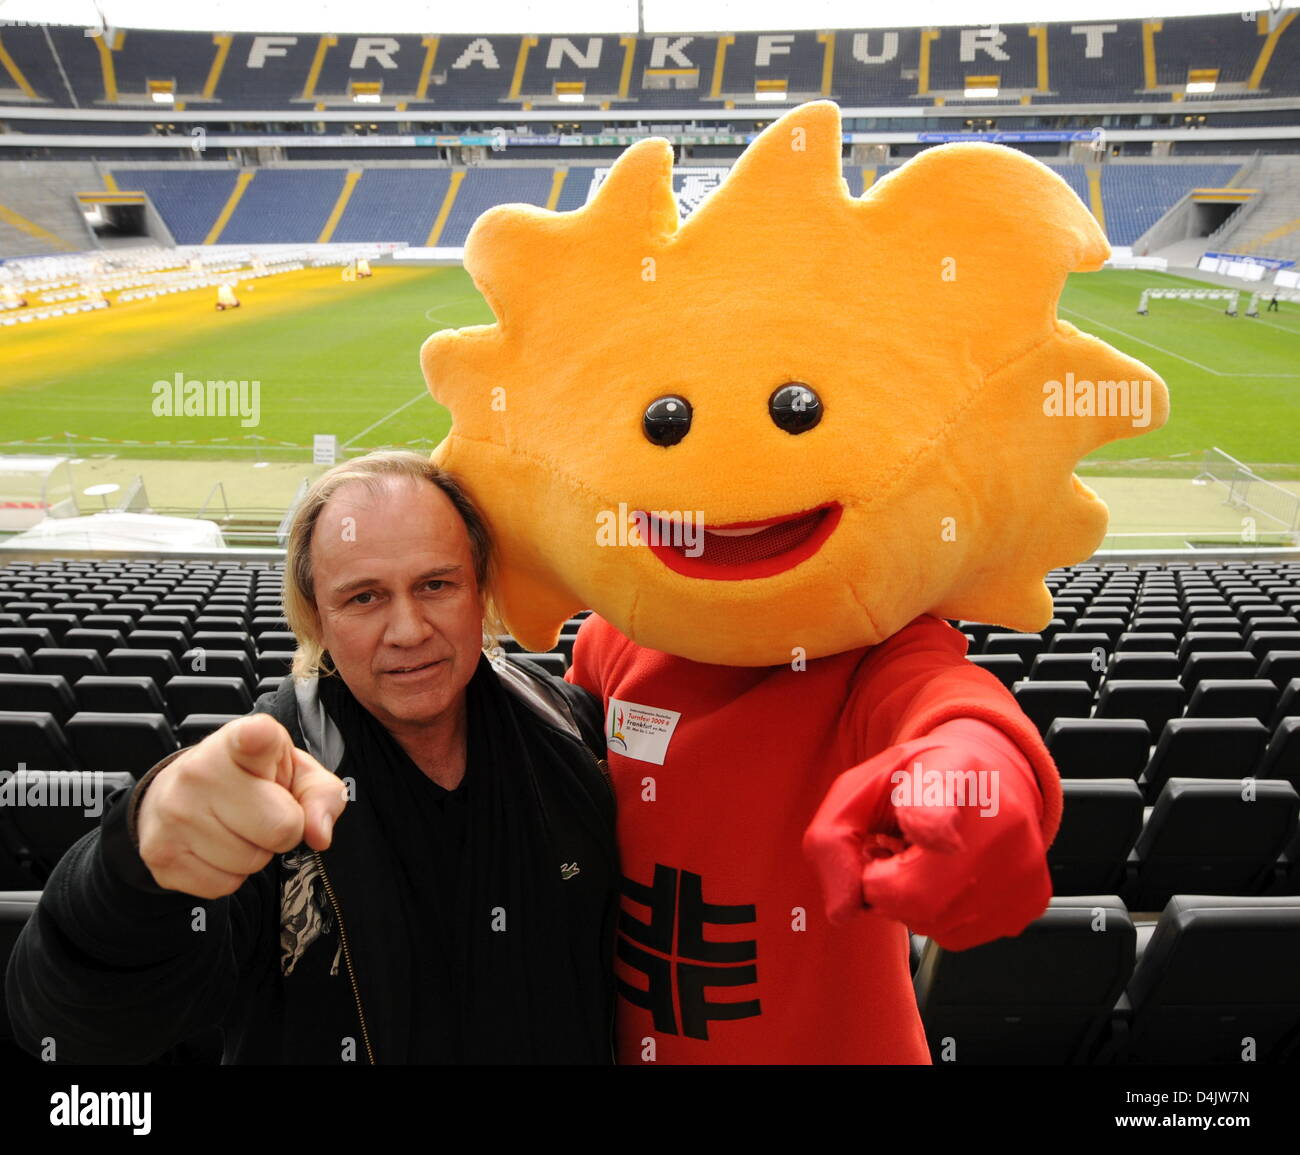 ?Struwwel? (R), the mascot of the International German Gymnastics Festival 2009, and Enno-Ilka Uhde, performance - Stock Image